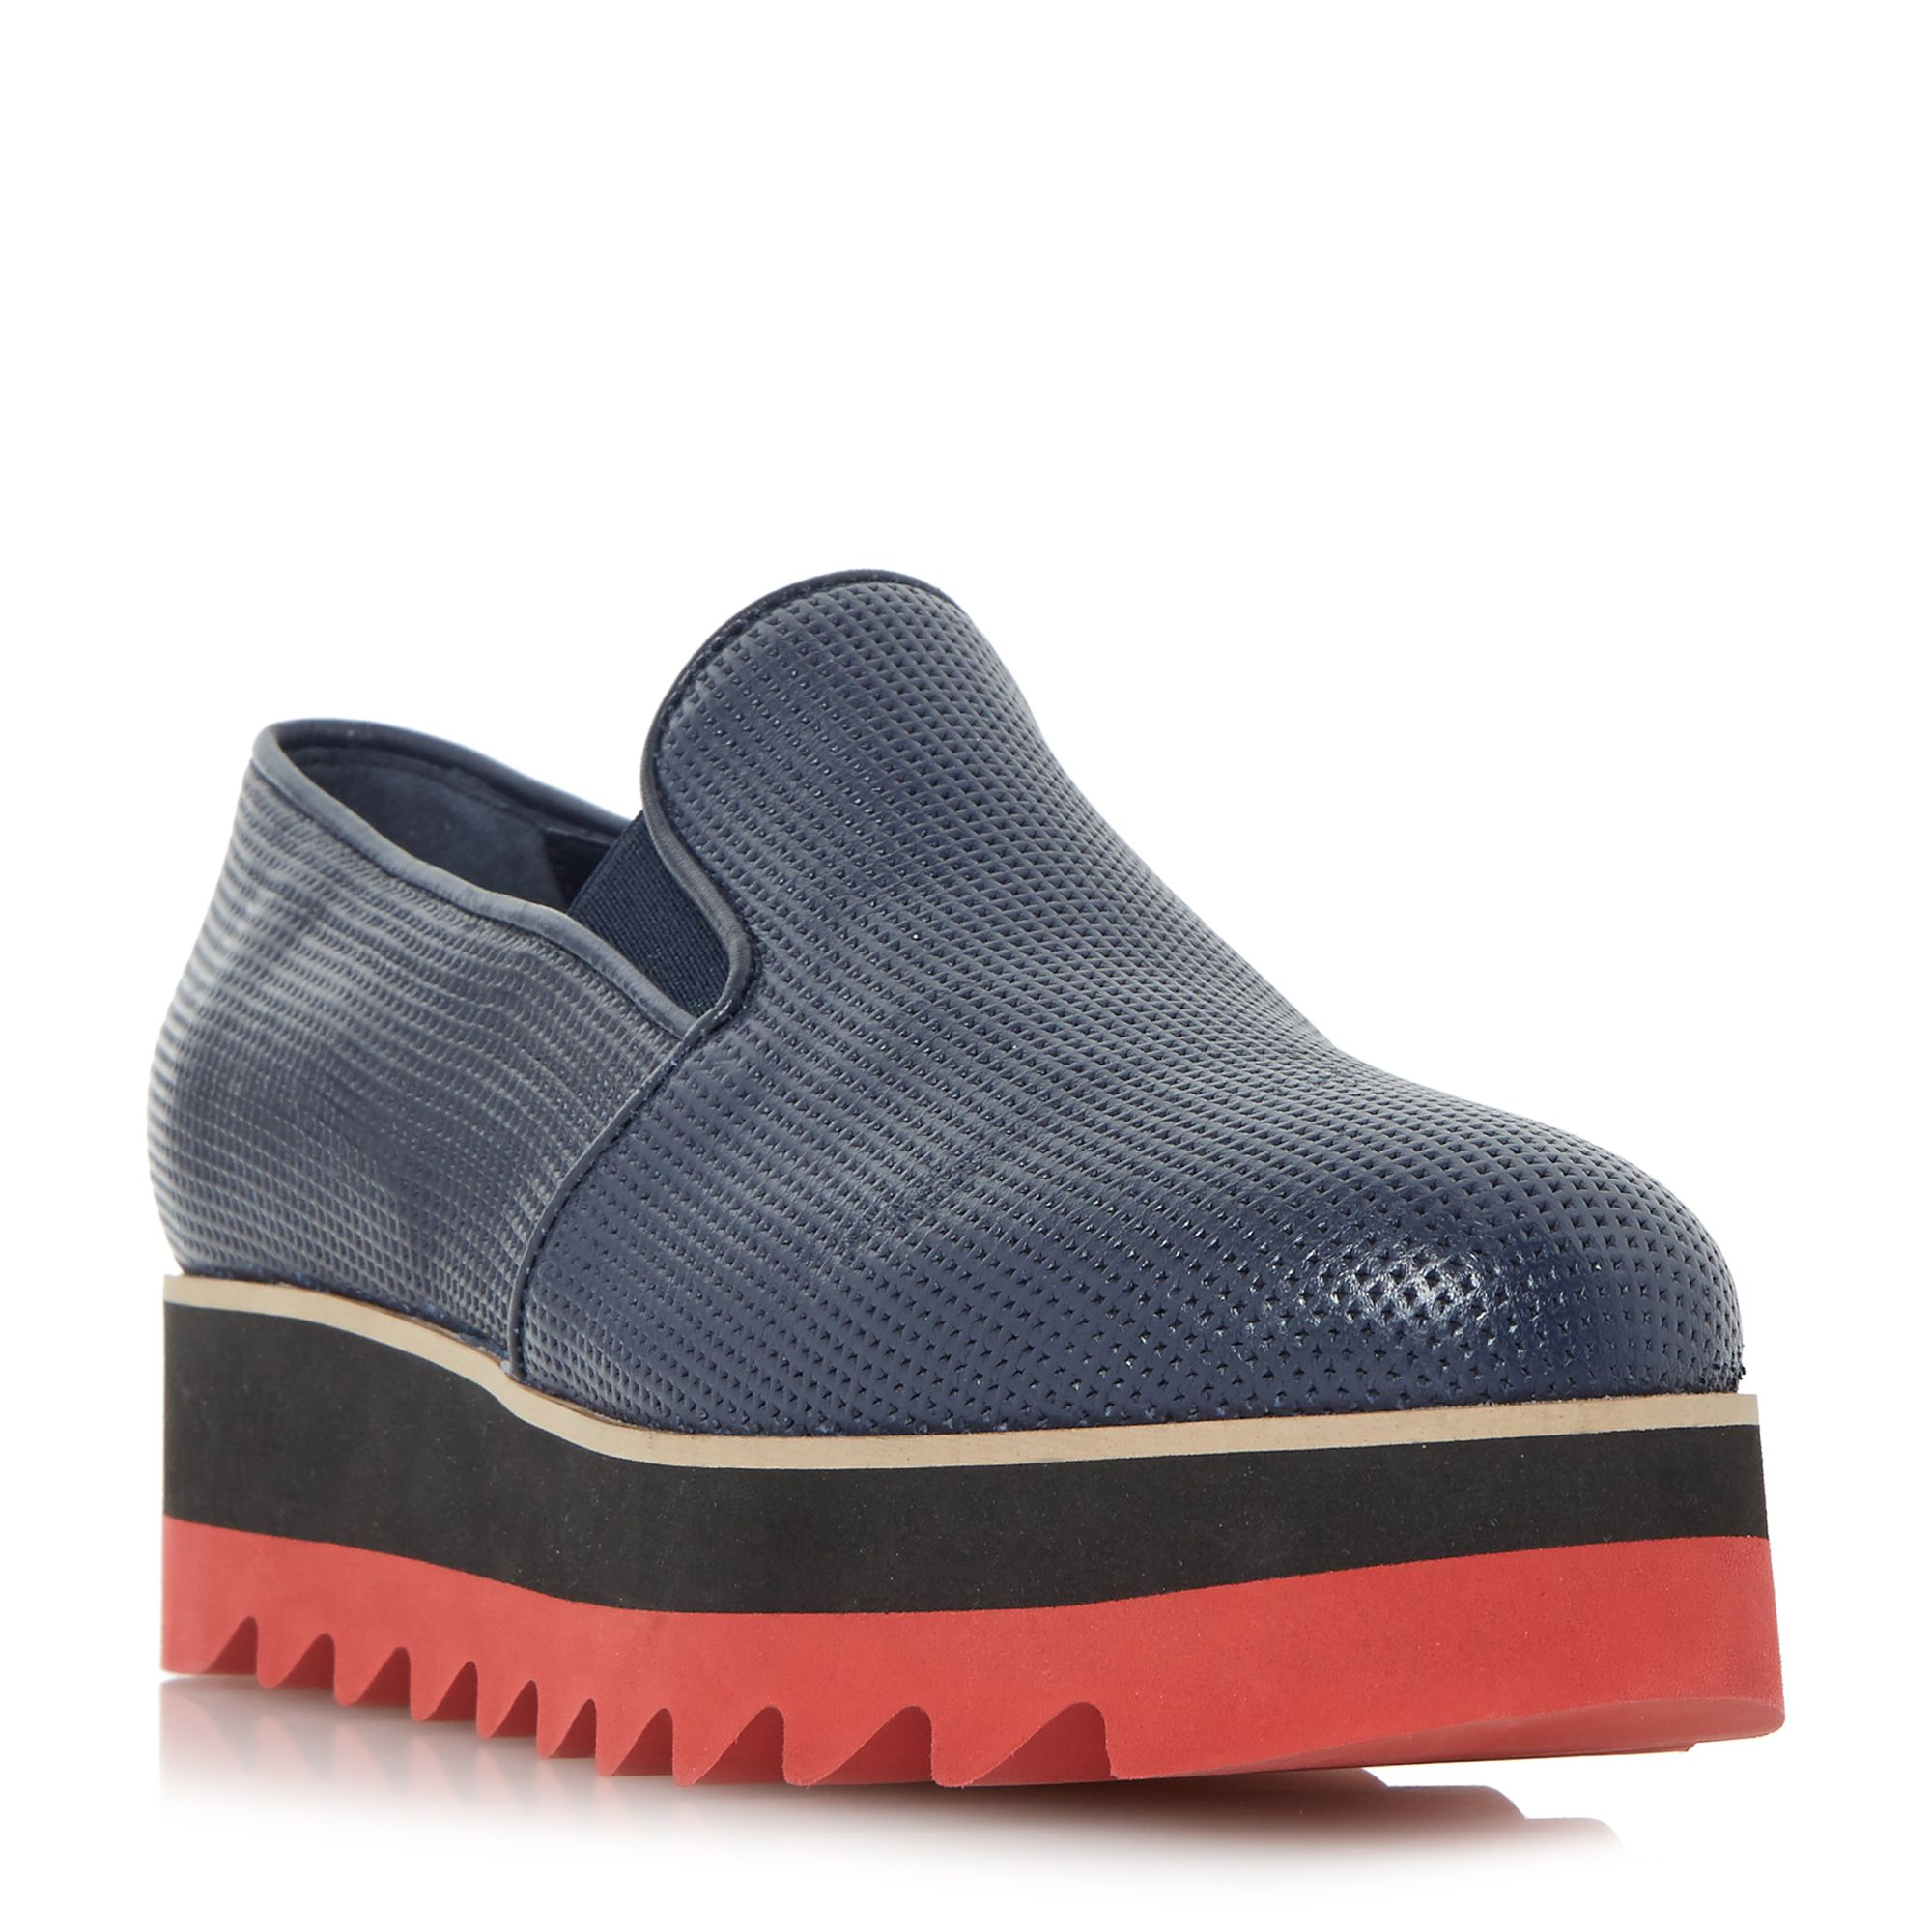 Dune Black Gloss shark tooth loafers, Blue